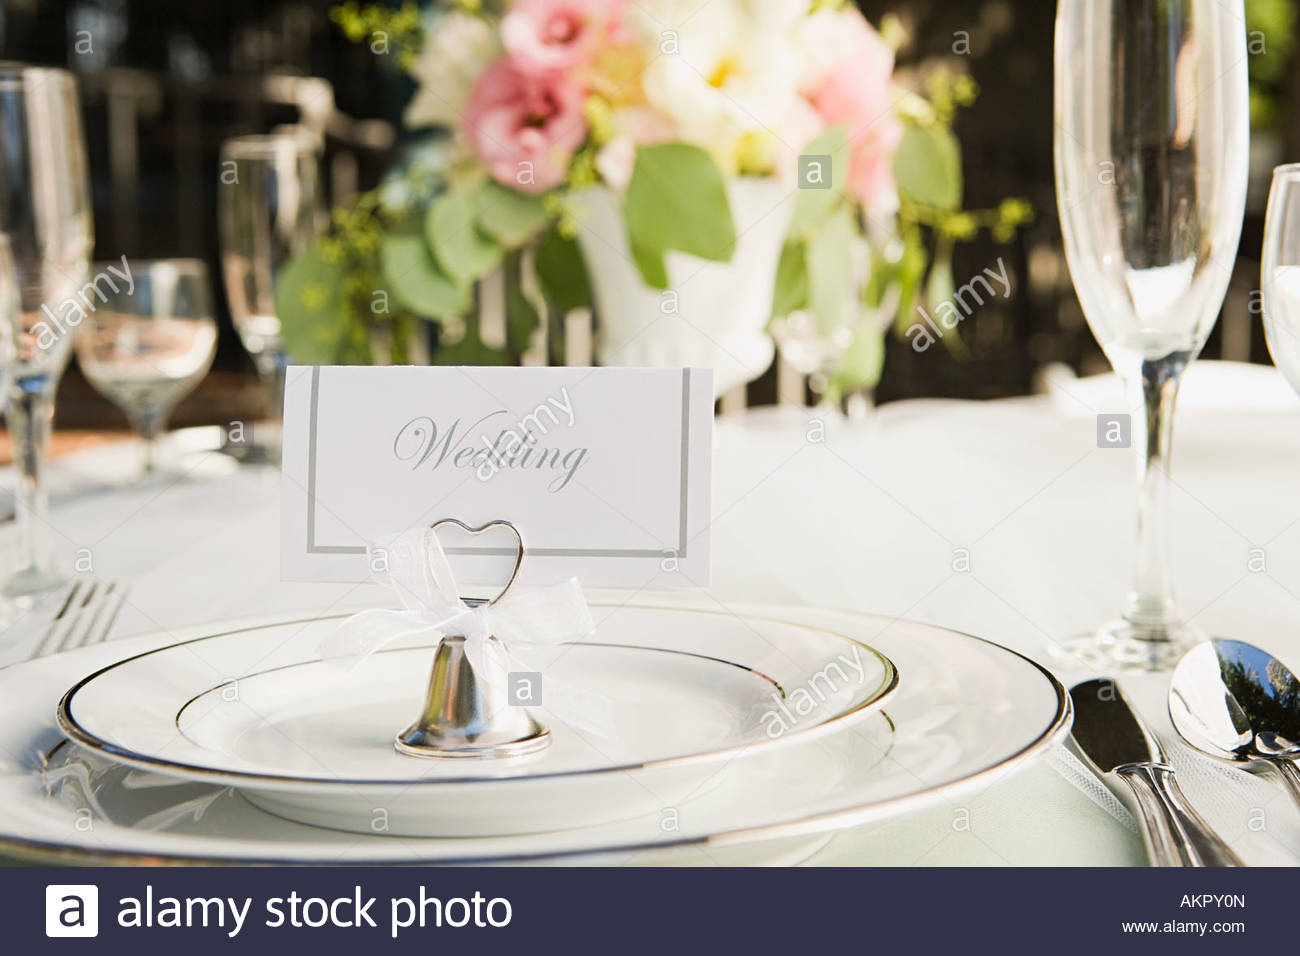 Place setting at a wedding - Stock Image & Wedding Table Settings Stock Photos \u0026 Wedding Table Settings Stock ...